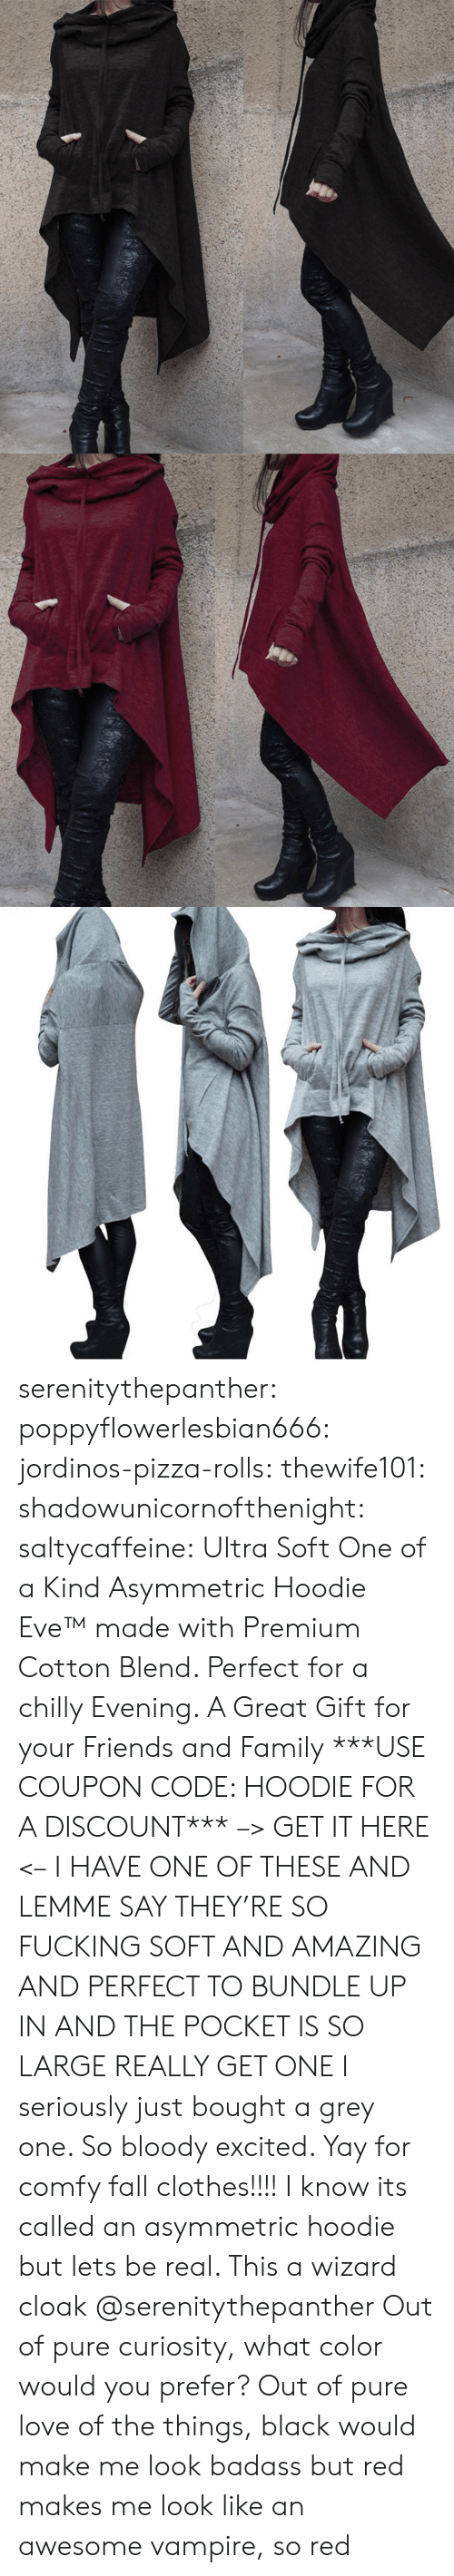 Clothes, Fall, and Family: serenitythepanther: poppyflowerlesbian666:   jordinos-pizza-rolls:  thewife101:  shadowunicornofthenight:  saltycaffeine:  Ultra Soft One of a Kind Asymmetric Hoodie Eve™ made with Premium Cotton Blend. Perfect for a chilly Evening. A Great Gift for your Friends and Family ***USE COUPON CODE: HOODIE FOR A DISCOUNT*** –> GET IT HERE <–   I HAVE ONE OF THESE AND LEMME SAY THEY'RE SO FUCKING SOFT AND AMAZING AND PERFECT TO BUNDLE UP IN AND THE POCKET IS SO LARGE REALLY GET ONE   I seriously just bought a grey one. So bloody excited. Yay for comfy fall clothes!!!!    I know its called an asymmetric hoodie but lets be real. This a wizard cloak   @serenitythepanther  Out of pure curiosity, what color would you prefer?   Out of pure love of the things, black would make me look badass but red makes me look like an awesome vampire, so red